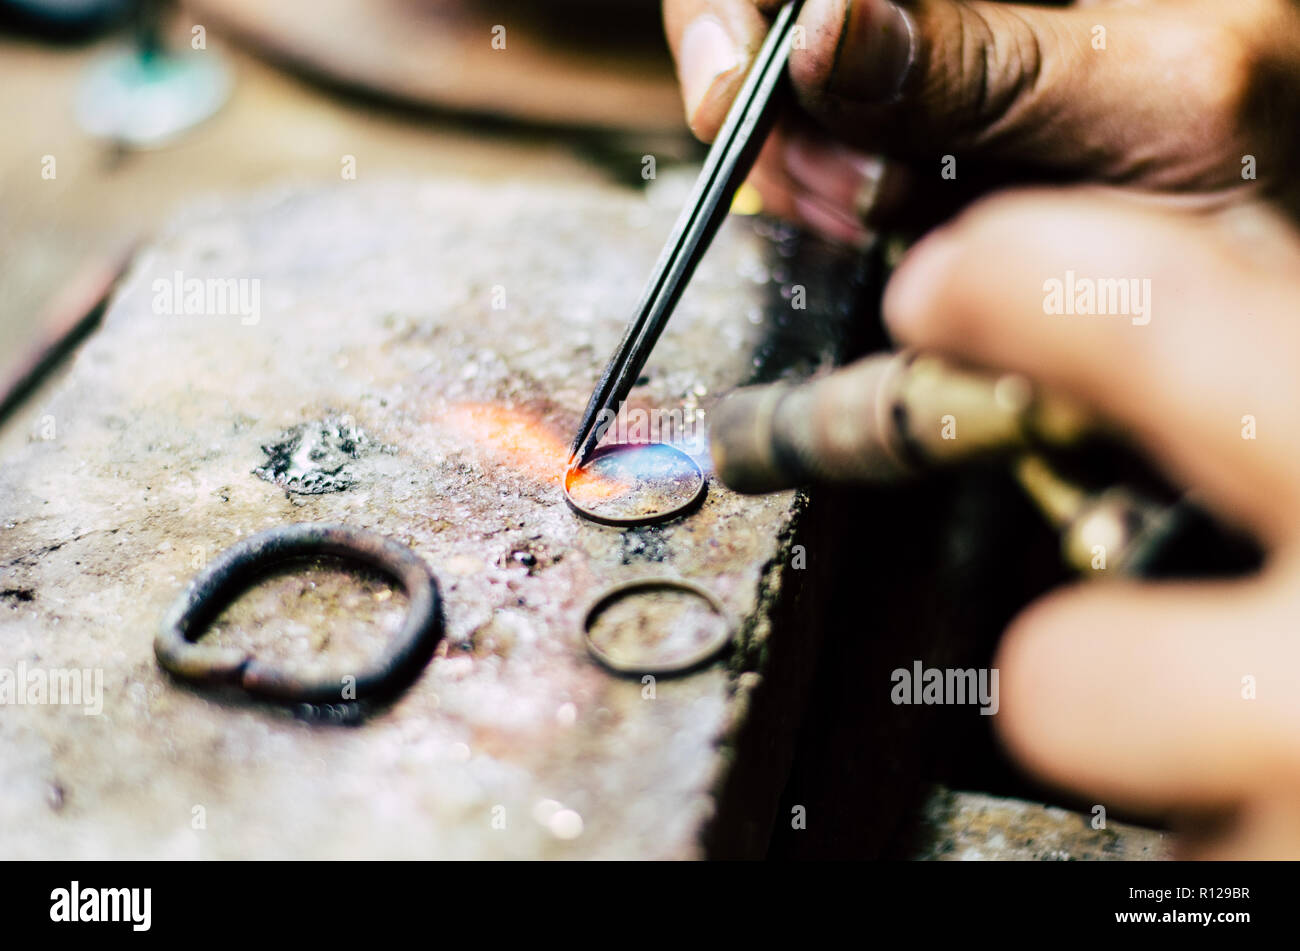 Industrial manufacture of the gold ring. Manufacture of a gold product in the jewelery workshop. - Stock Image